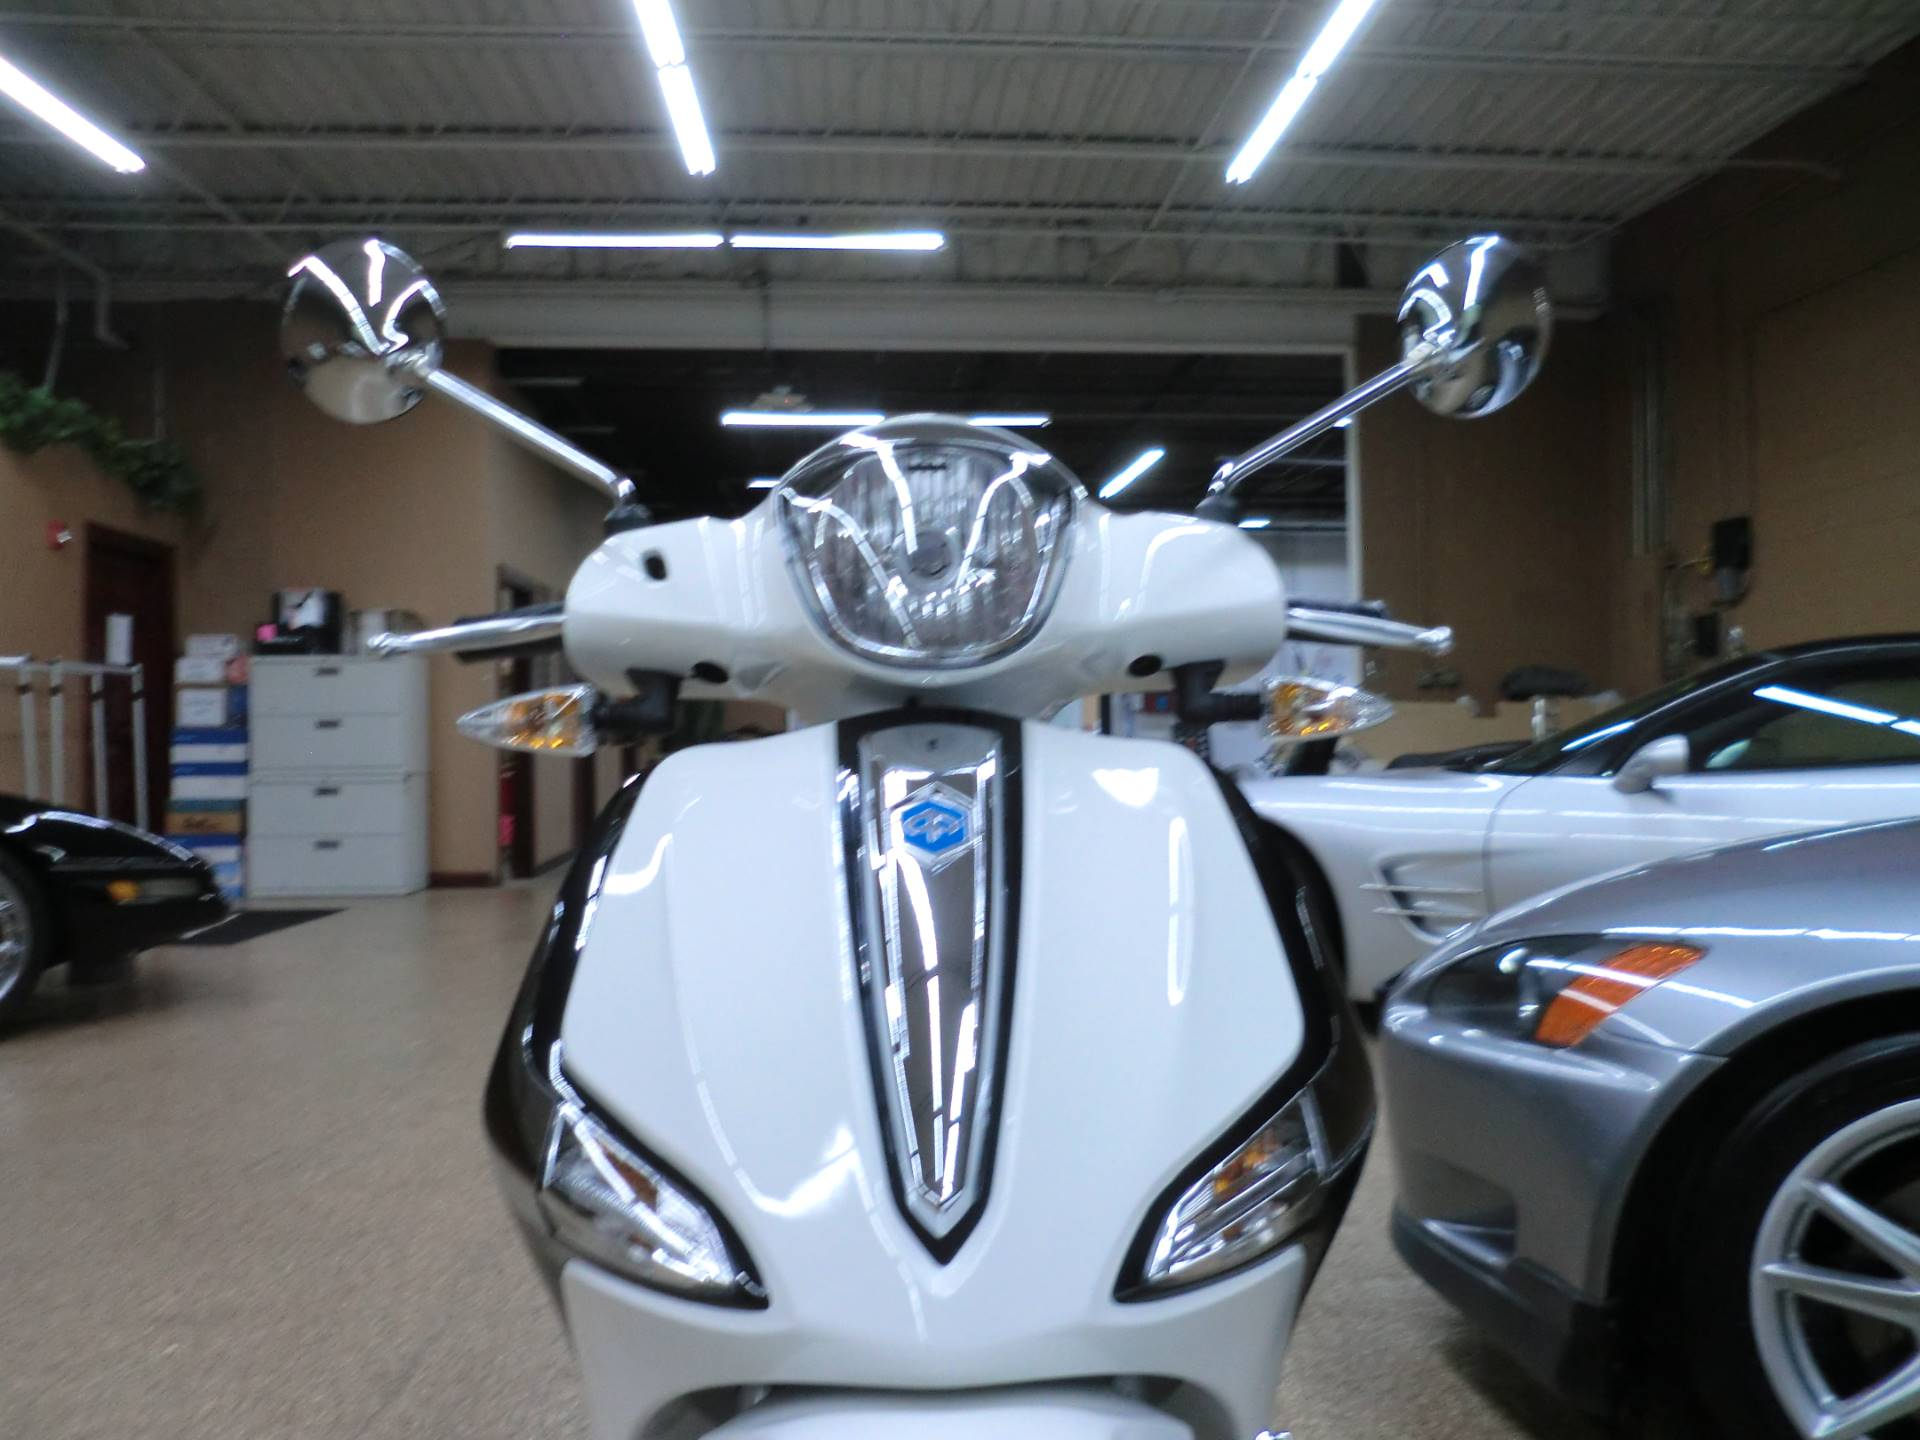 2021 Piaggio Liberty 150 in Downers Grove, Illinois - Photo 2